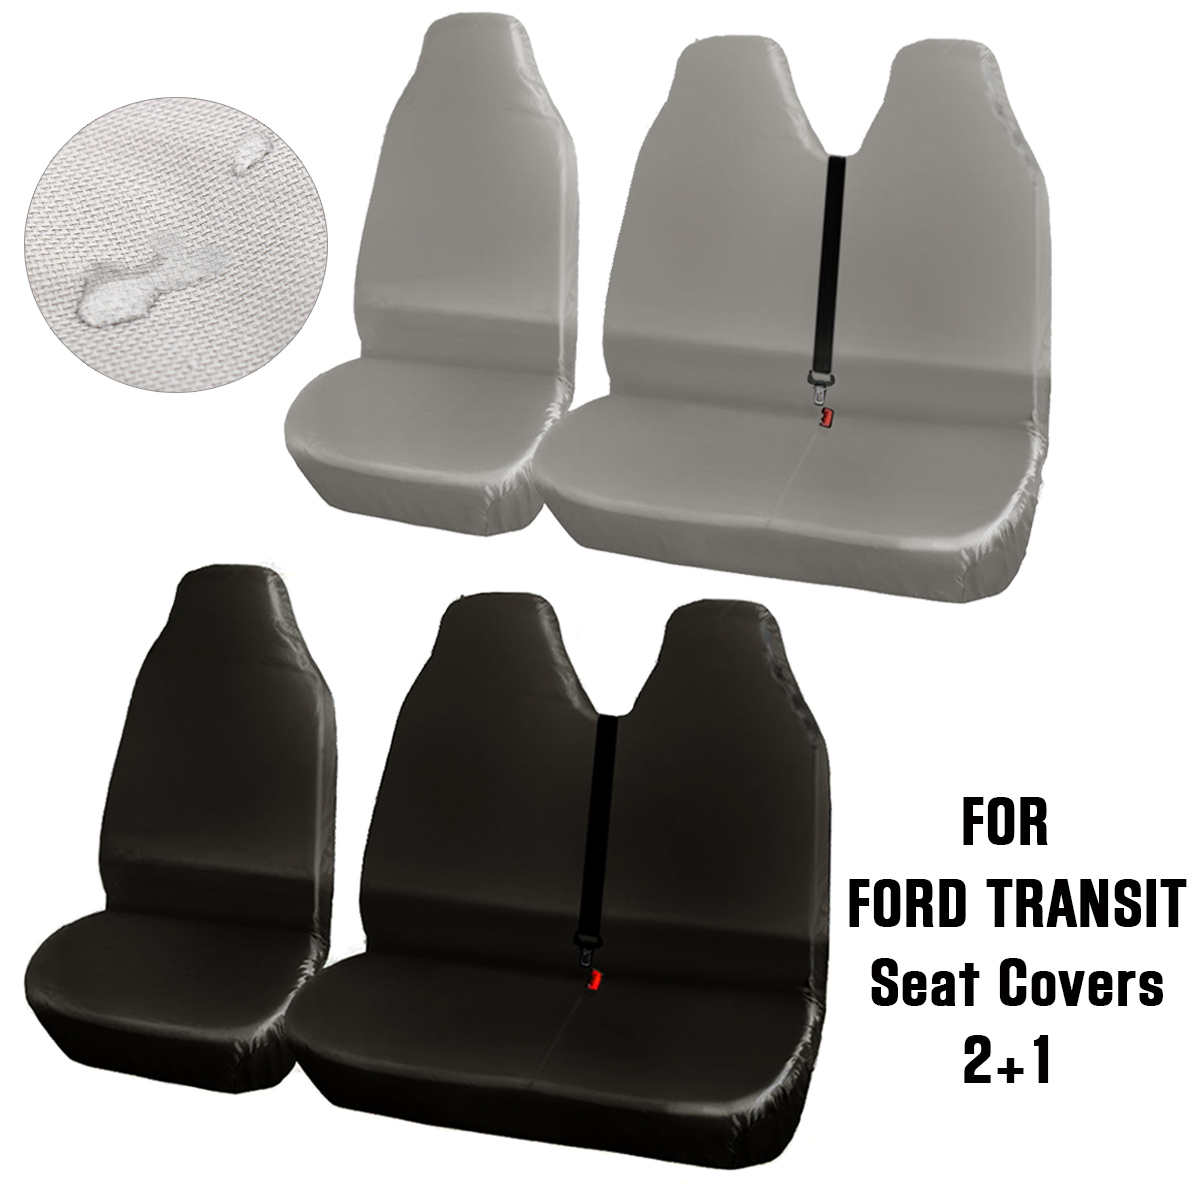 2+1 Set Van Covers Protectors Driver Bench Cover Waterproof Dustproof Black Grey Covers For Ford Transt MK7 2006-2013